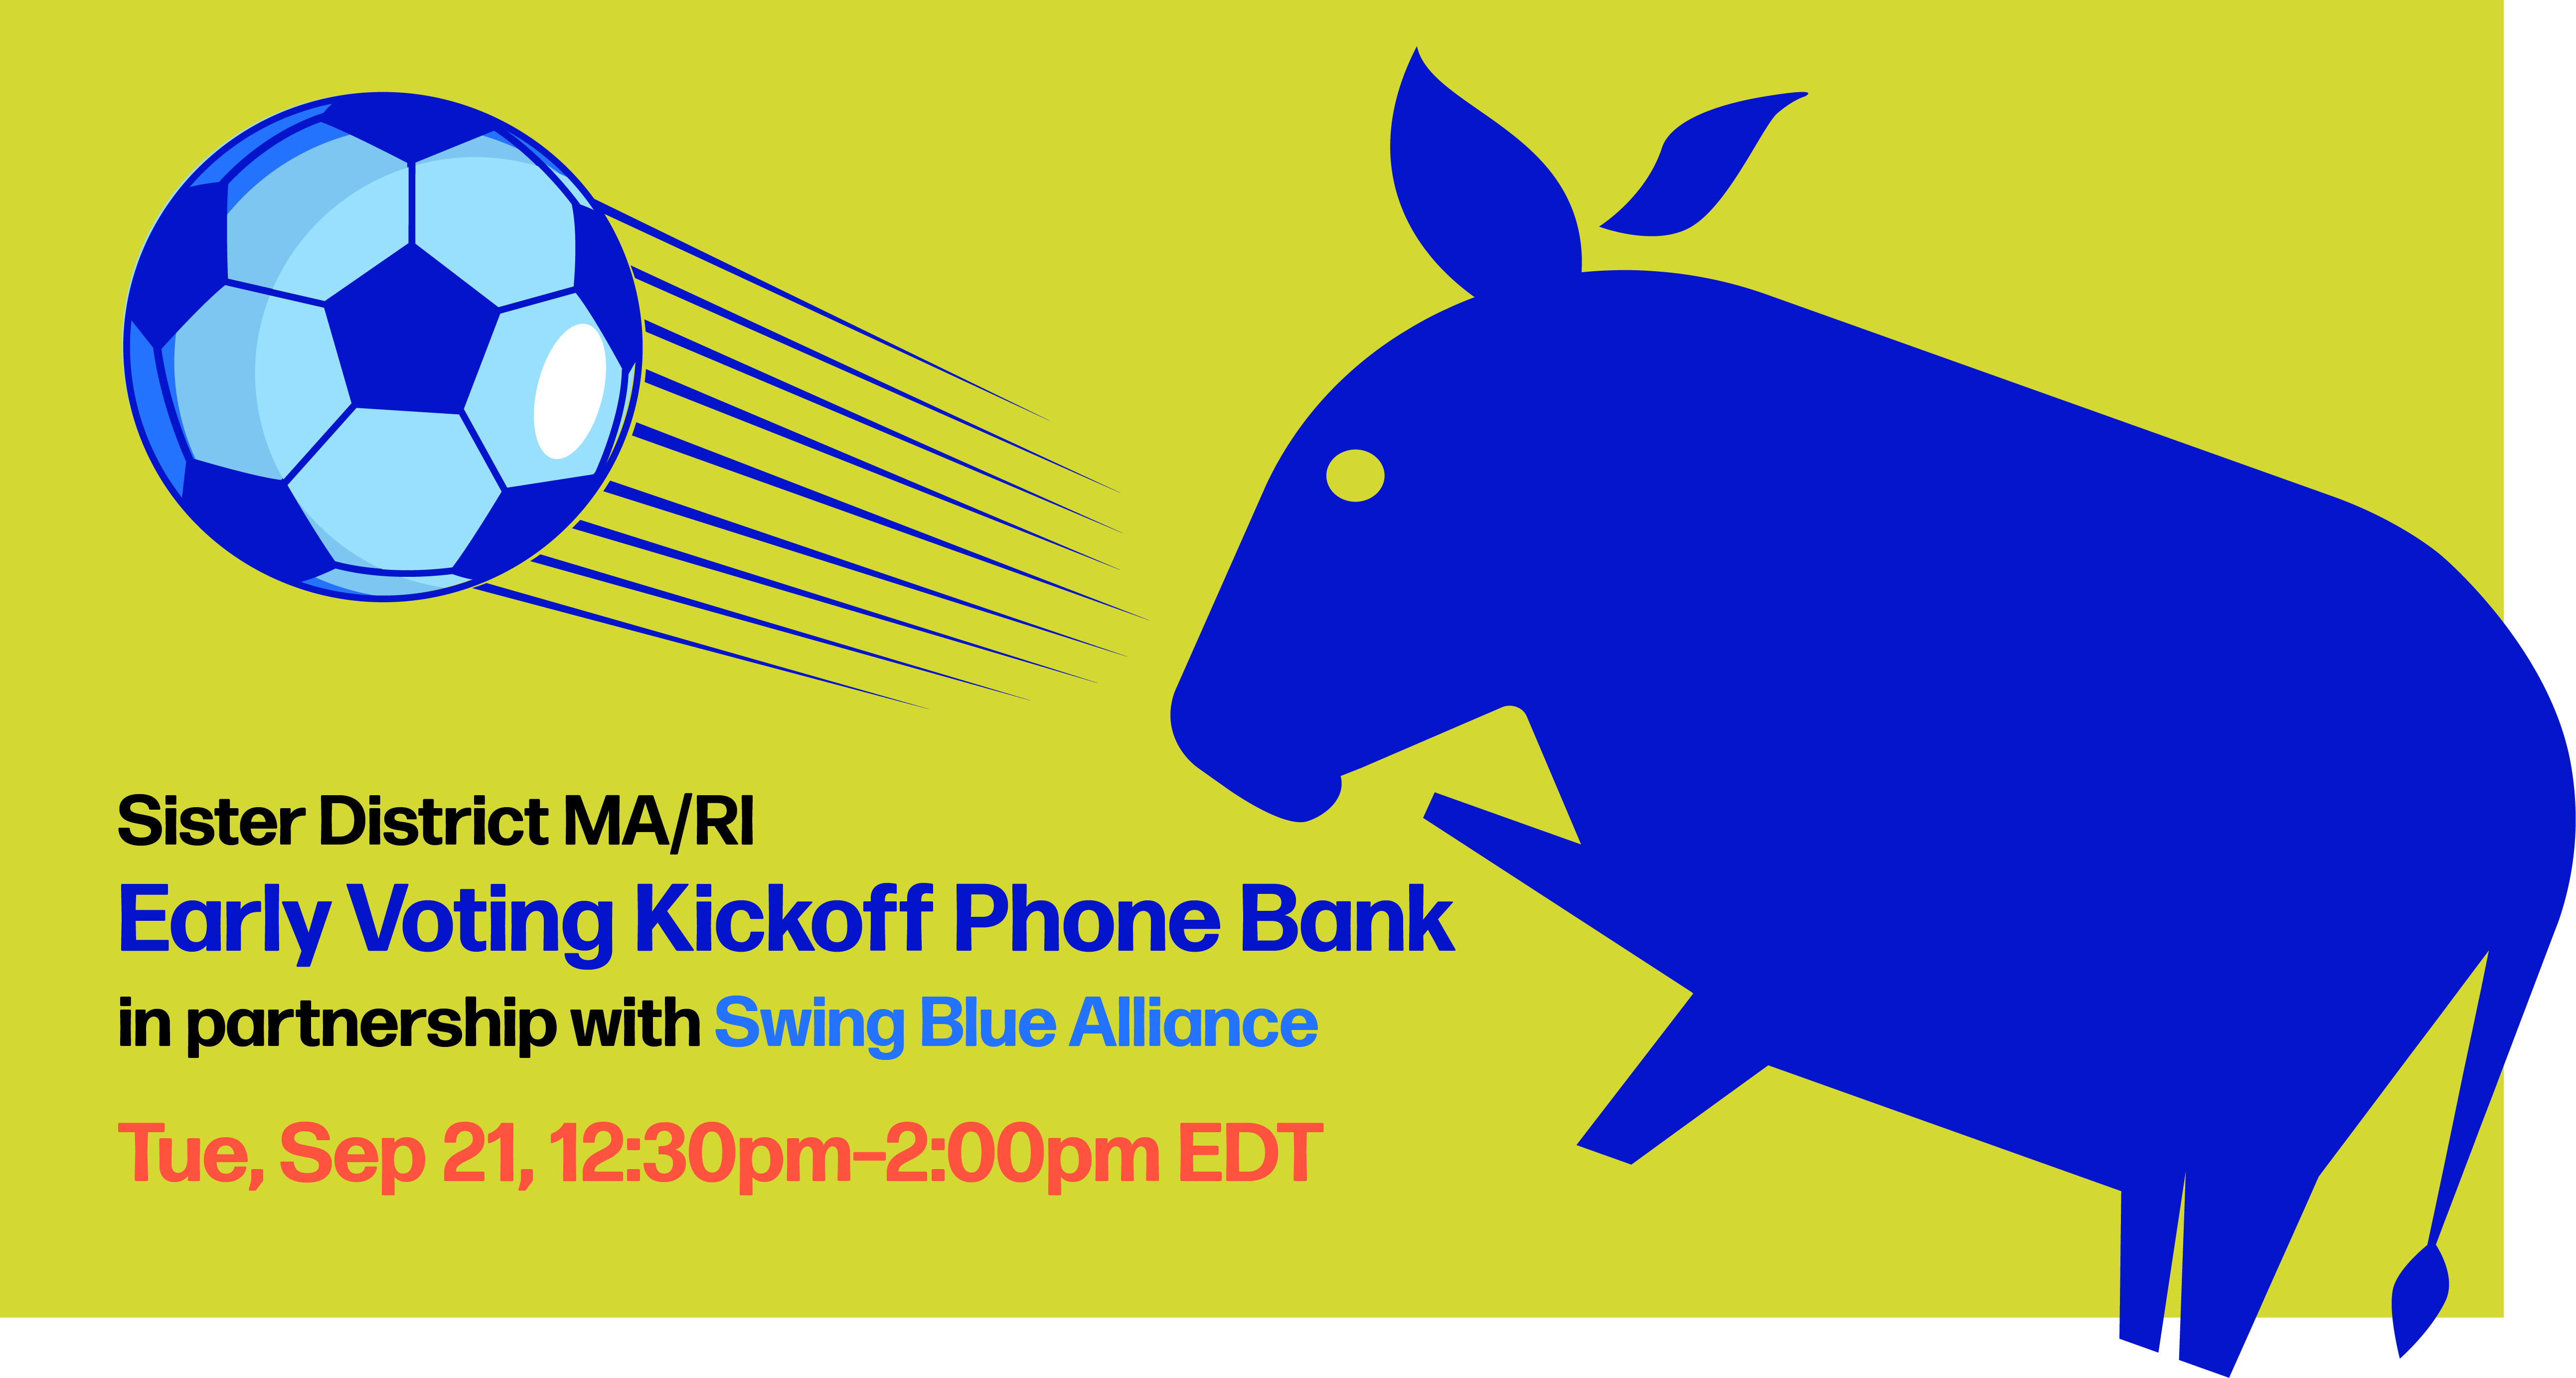 Sister District MA/RI Early Voting Kickoff Phone Bank 9/21 12:30-2pm ET